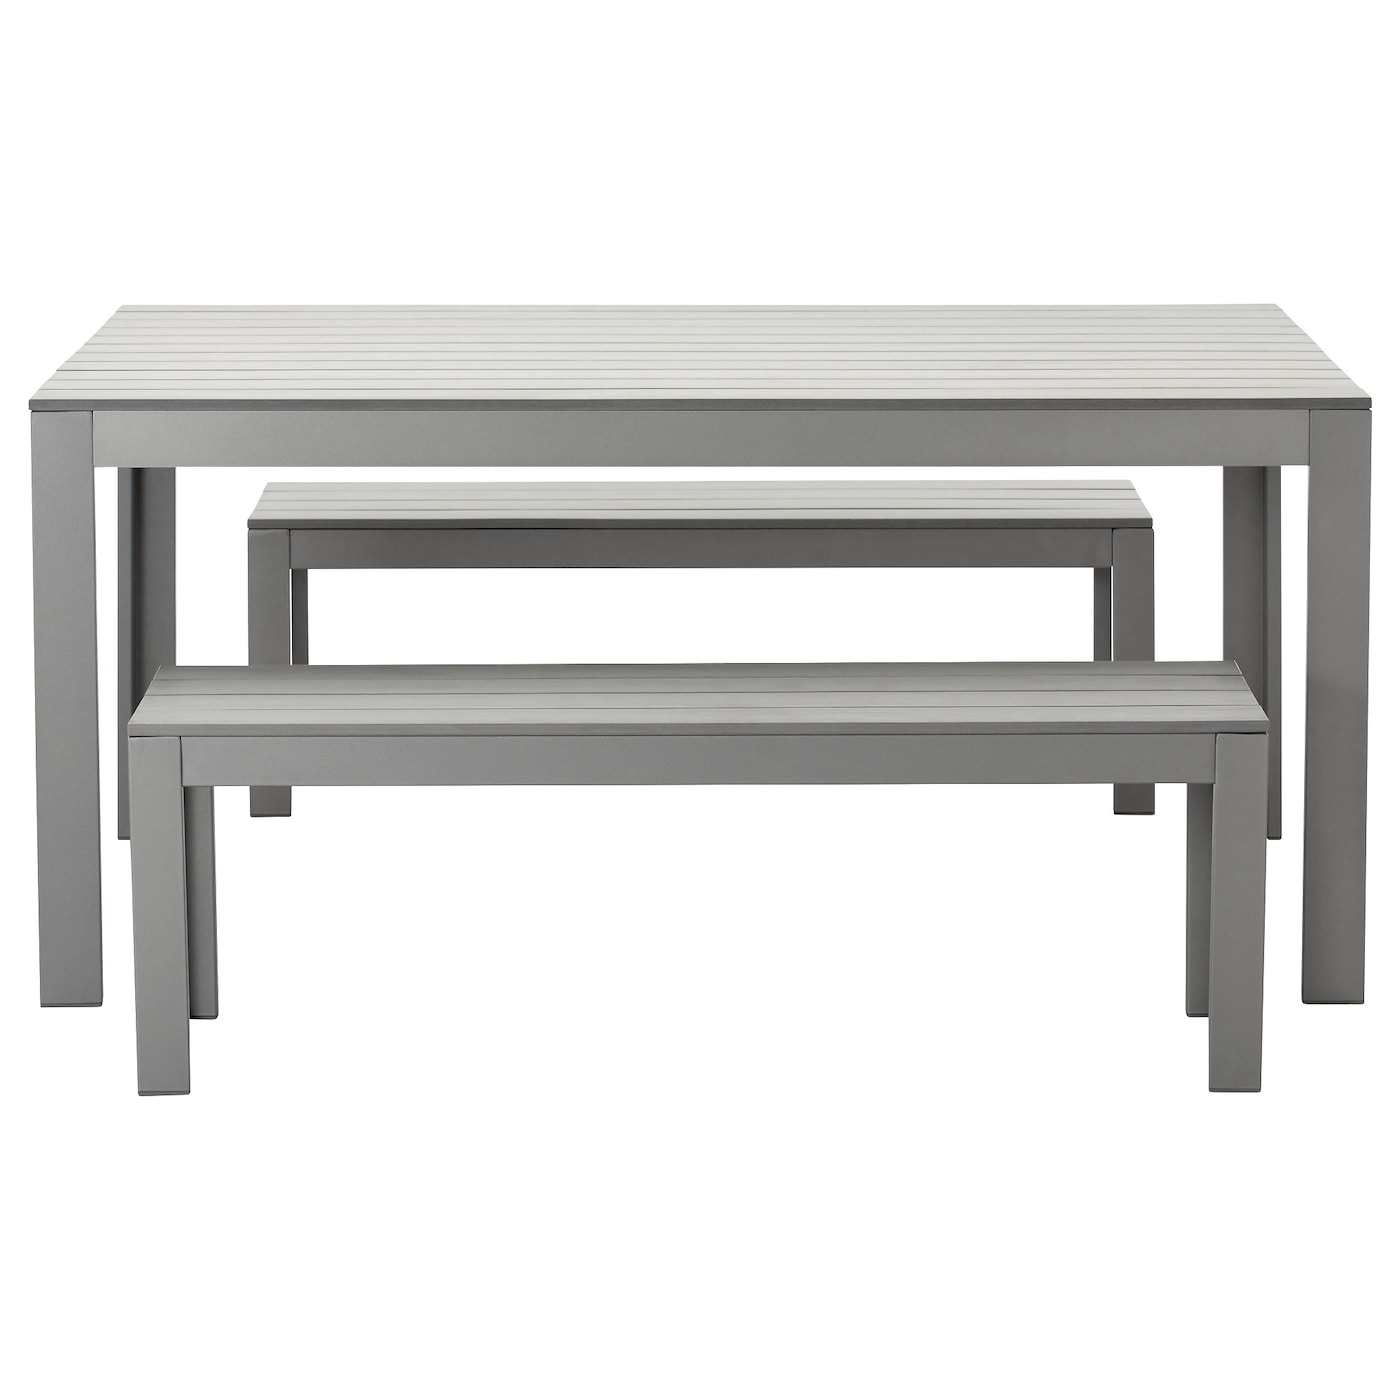 Falster table 2 benches outdoor grey ikea for Ikea falster